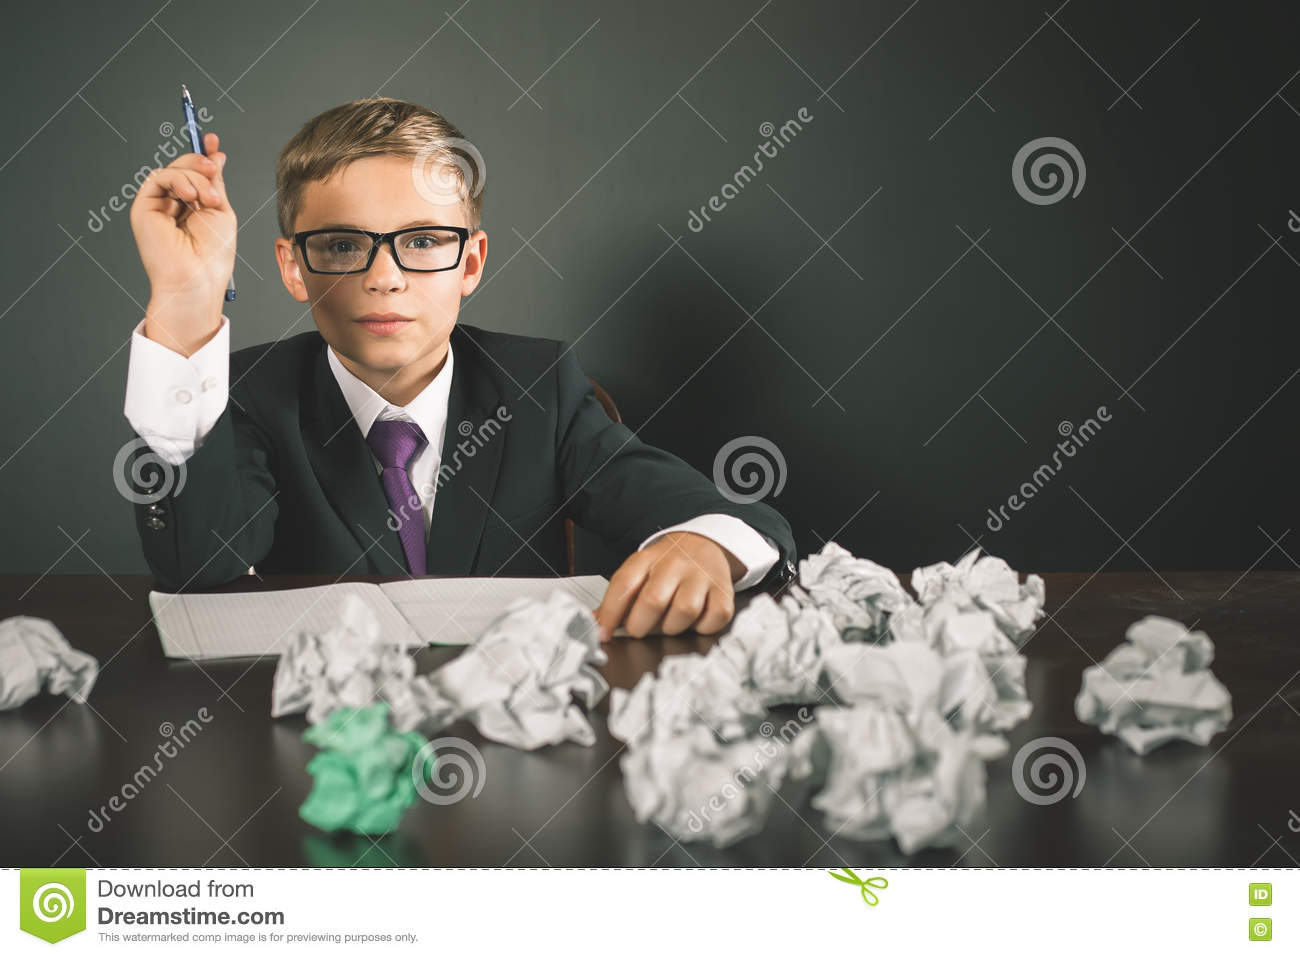 inspired school boy has a great idea stock photo   image of  inspired school boy has a great idea writing essay or exam young business  person has a good idea and writing it conceptual image copy space